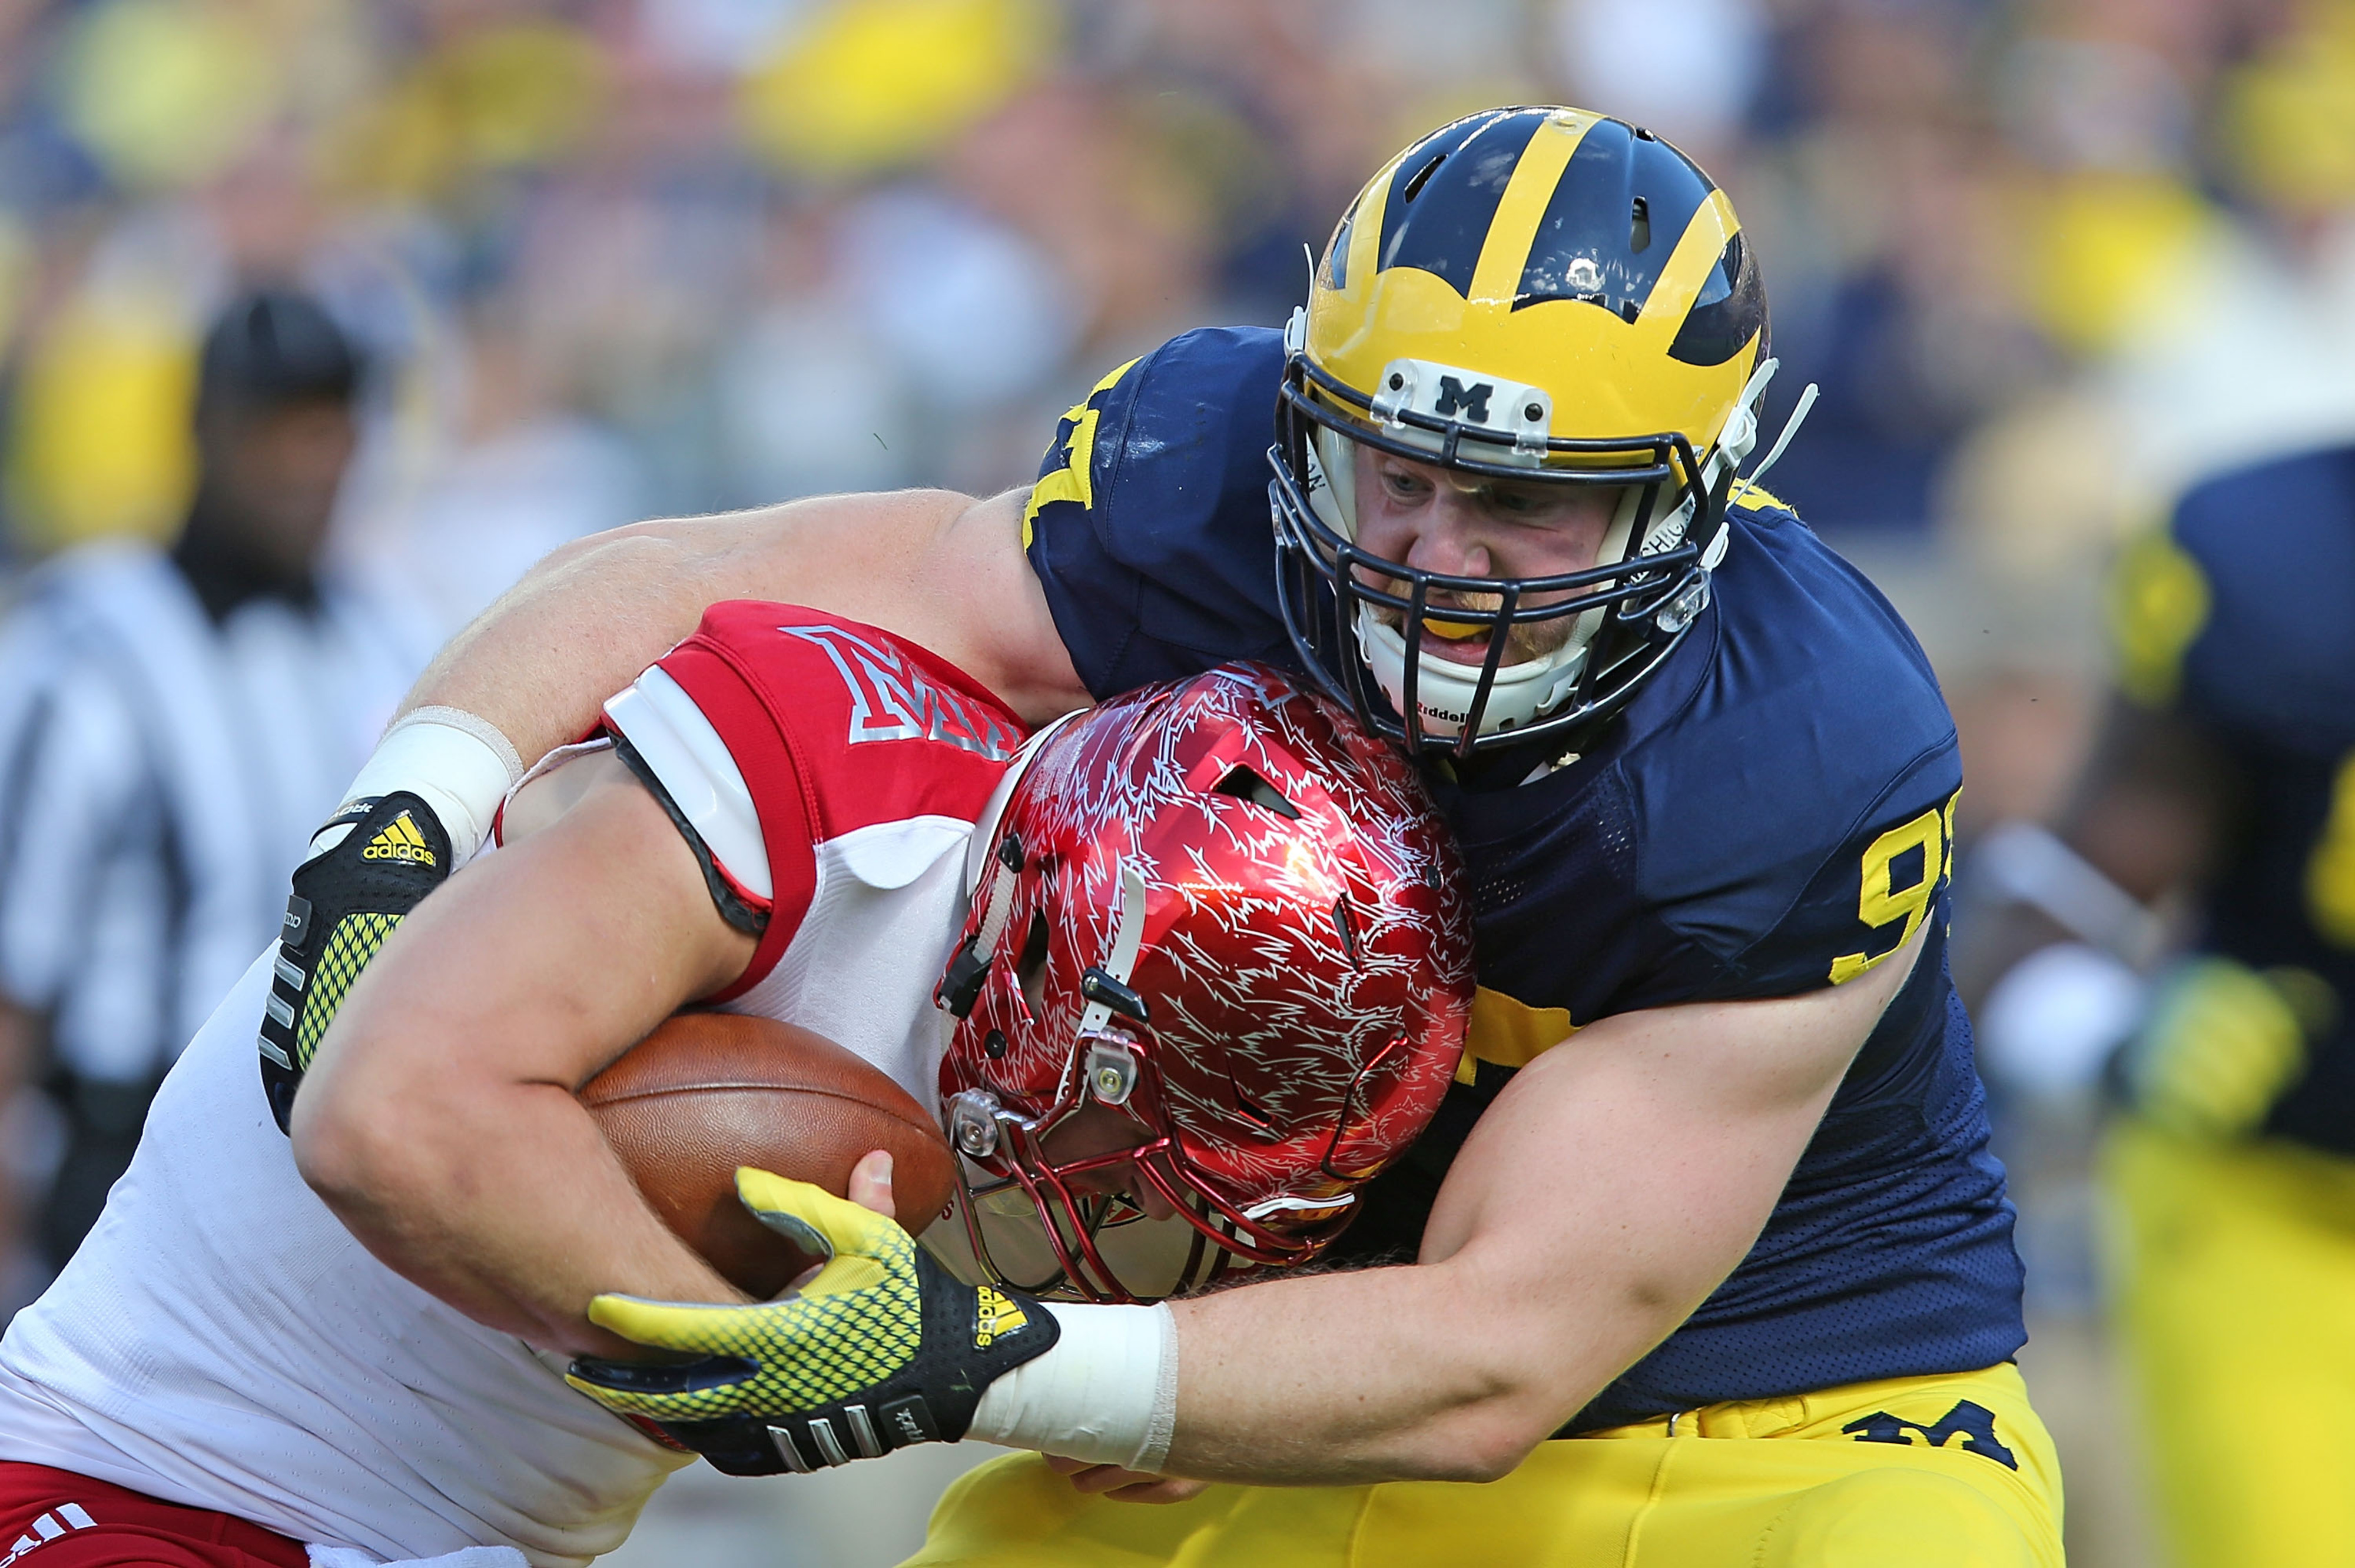 Michigan senior defensive end Brennen Beyer, along with his cohorts on the Wolverine D-line, will test Utah's offensive line,